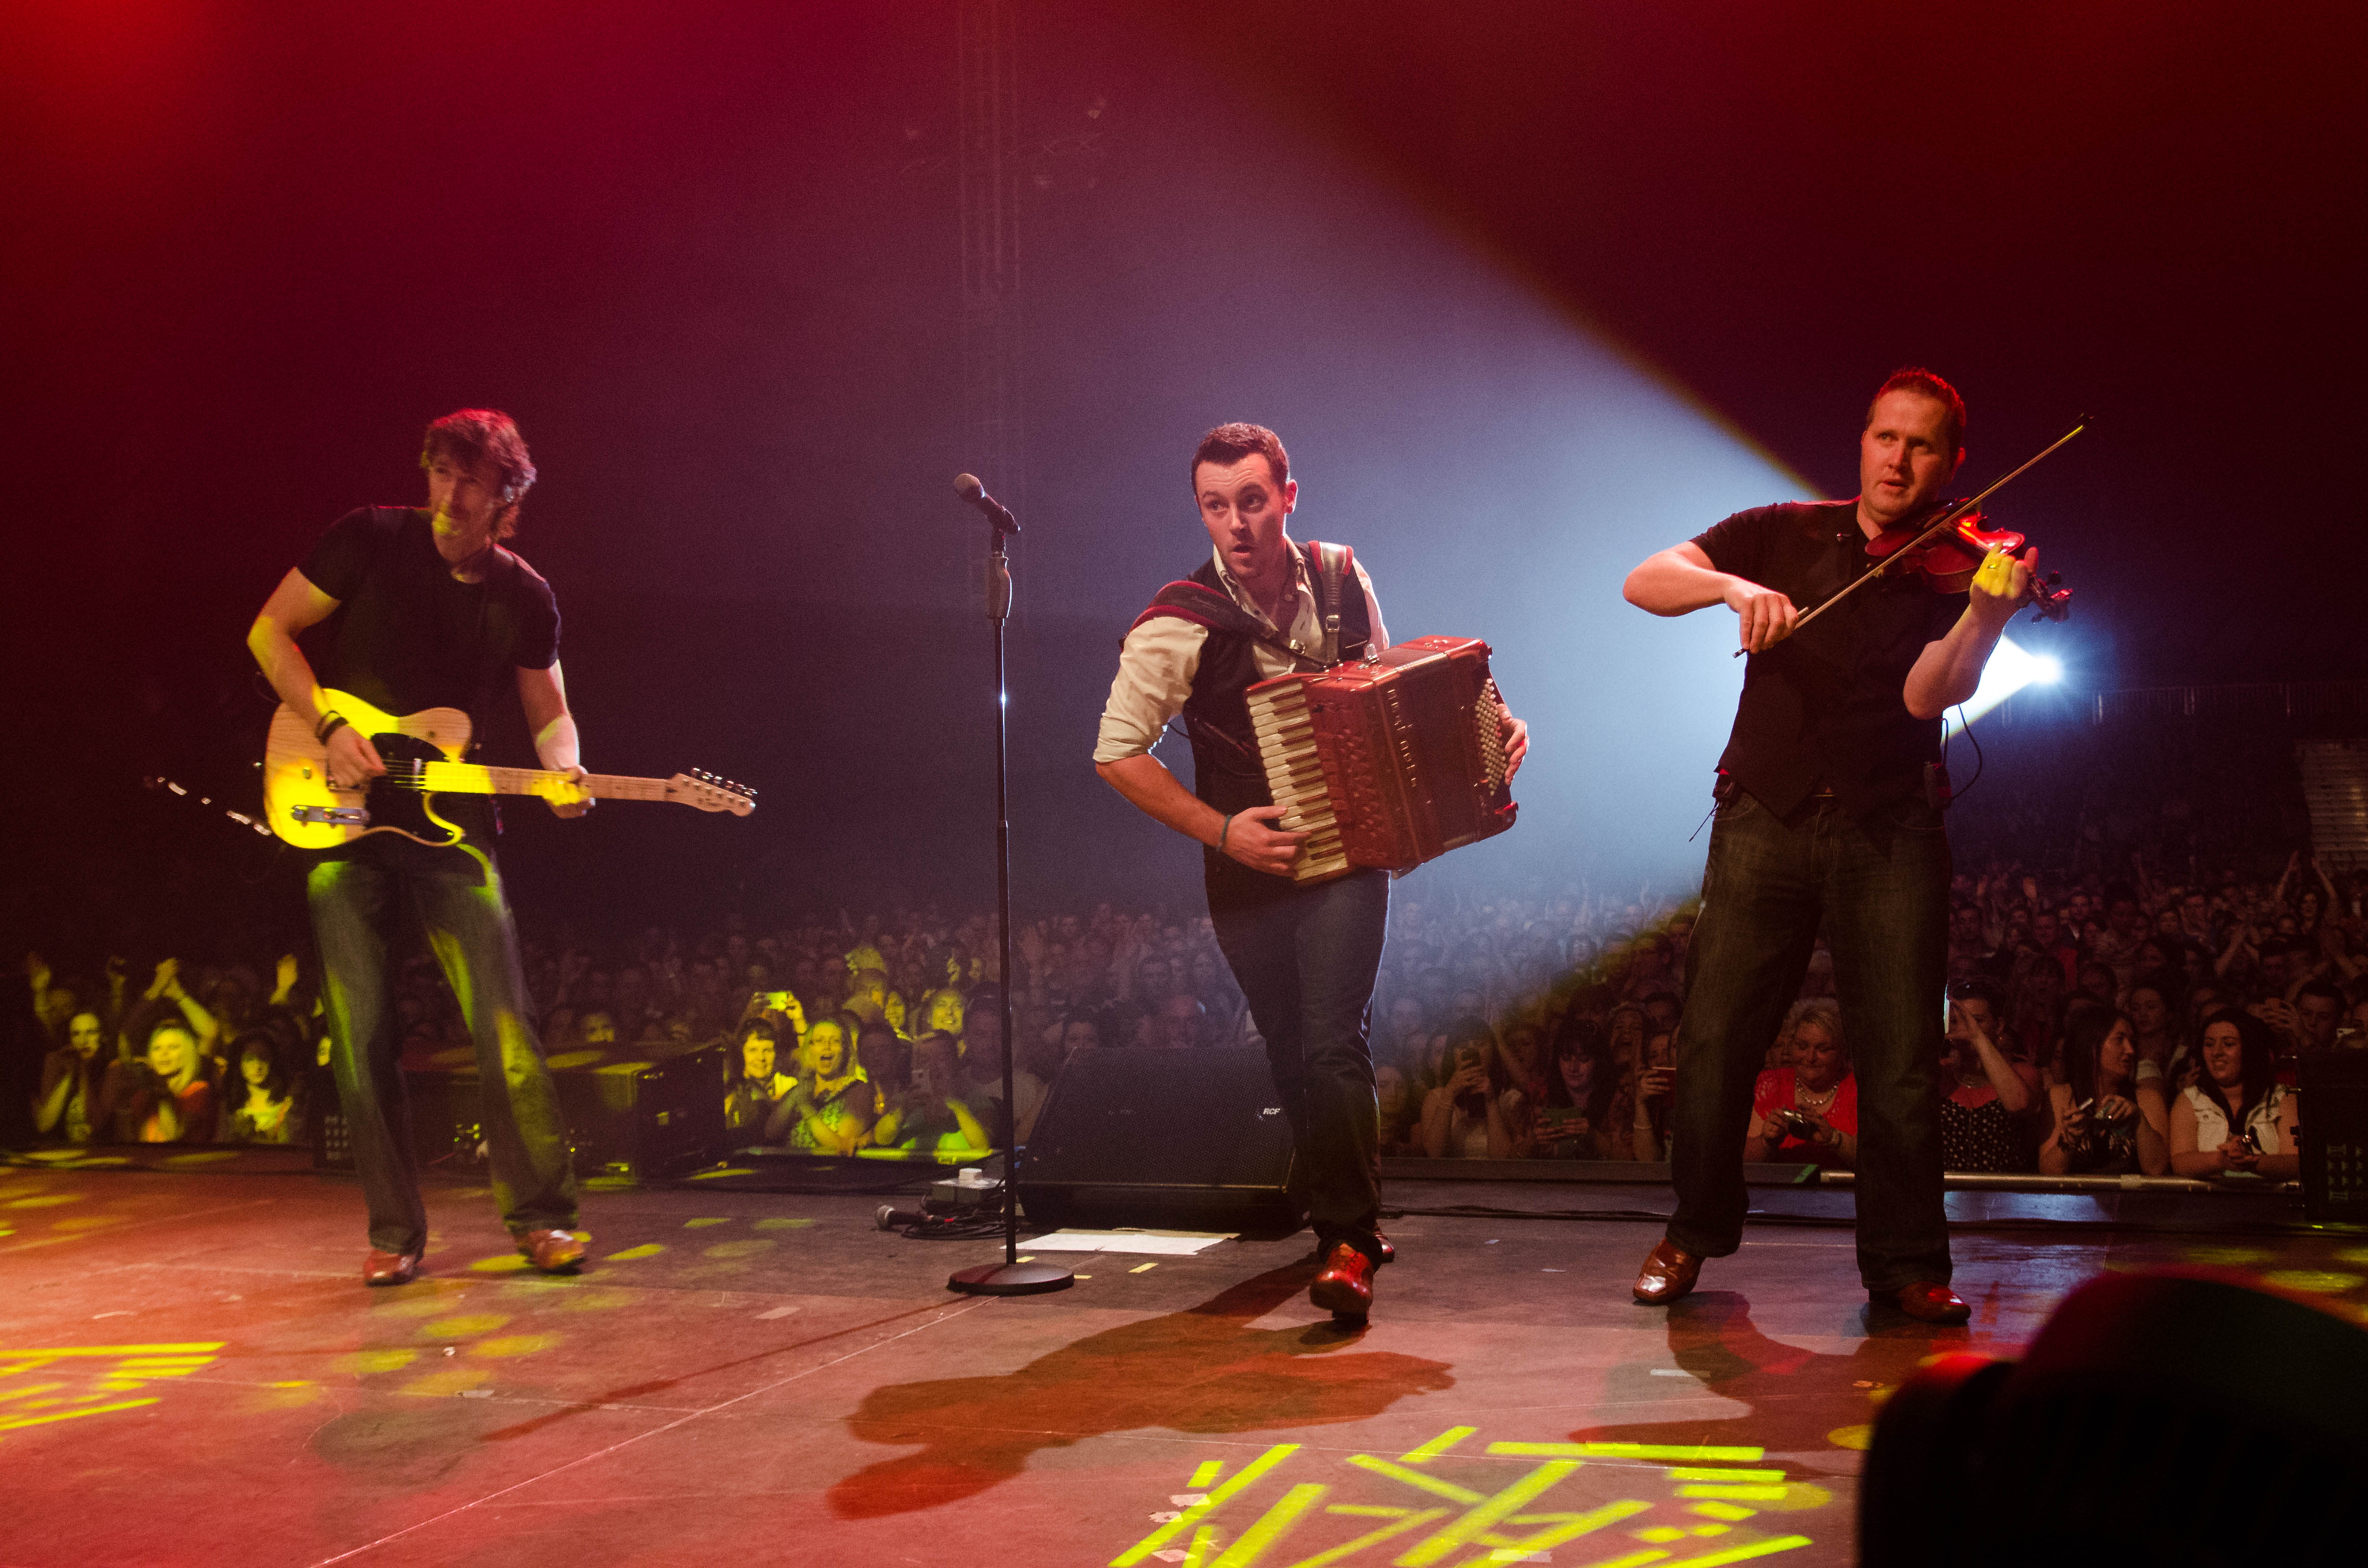 nathan-carter-at-the-marquee-cork-by-sean-smyth-15-6-14-21-of-55